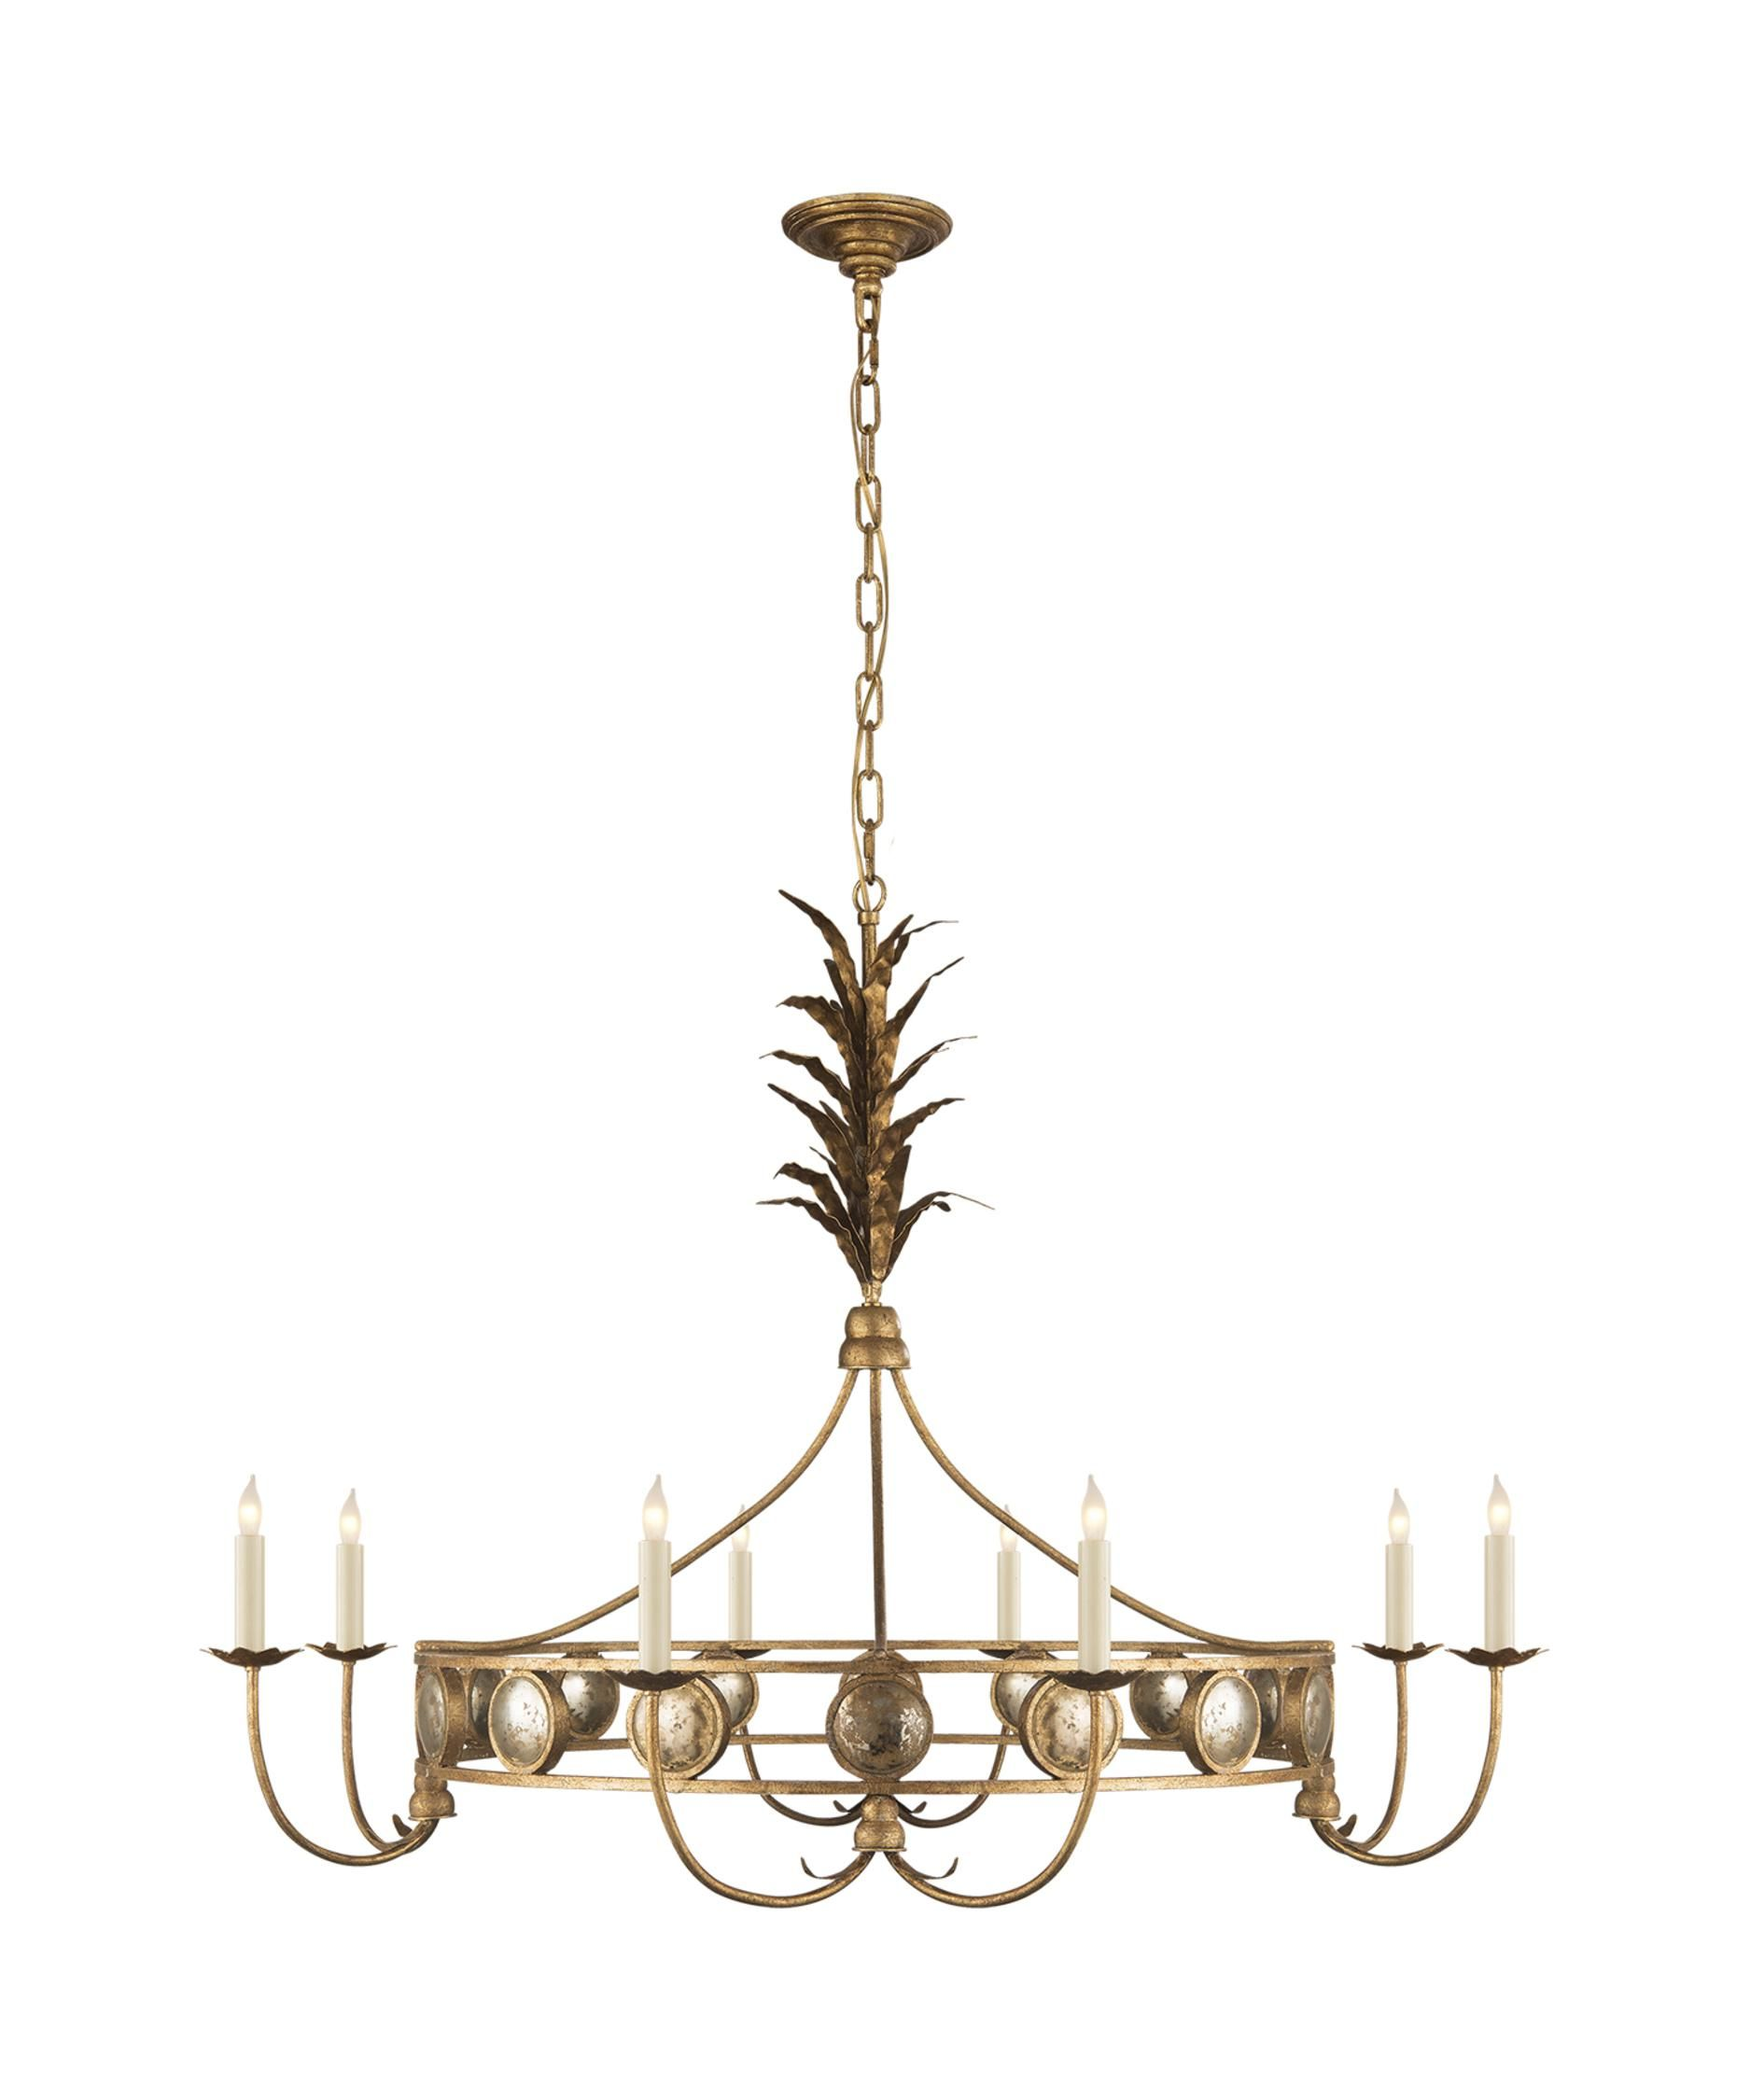 Visual Comfort Chc5378 Gramercy 45 Inch Chandelier Chandelier Ceiling Lights Ceiling Lights Chandelier